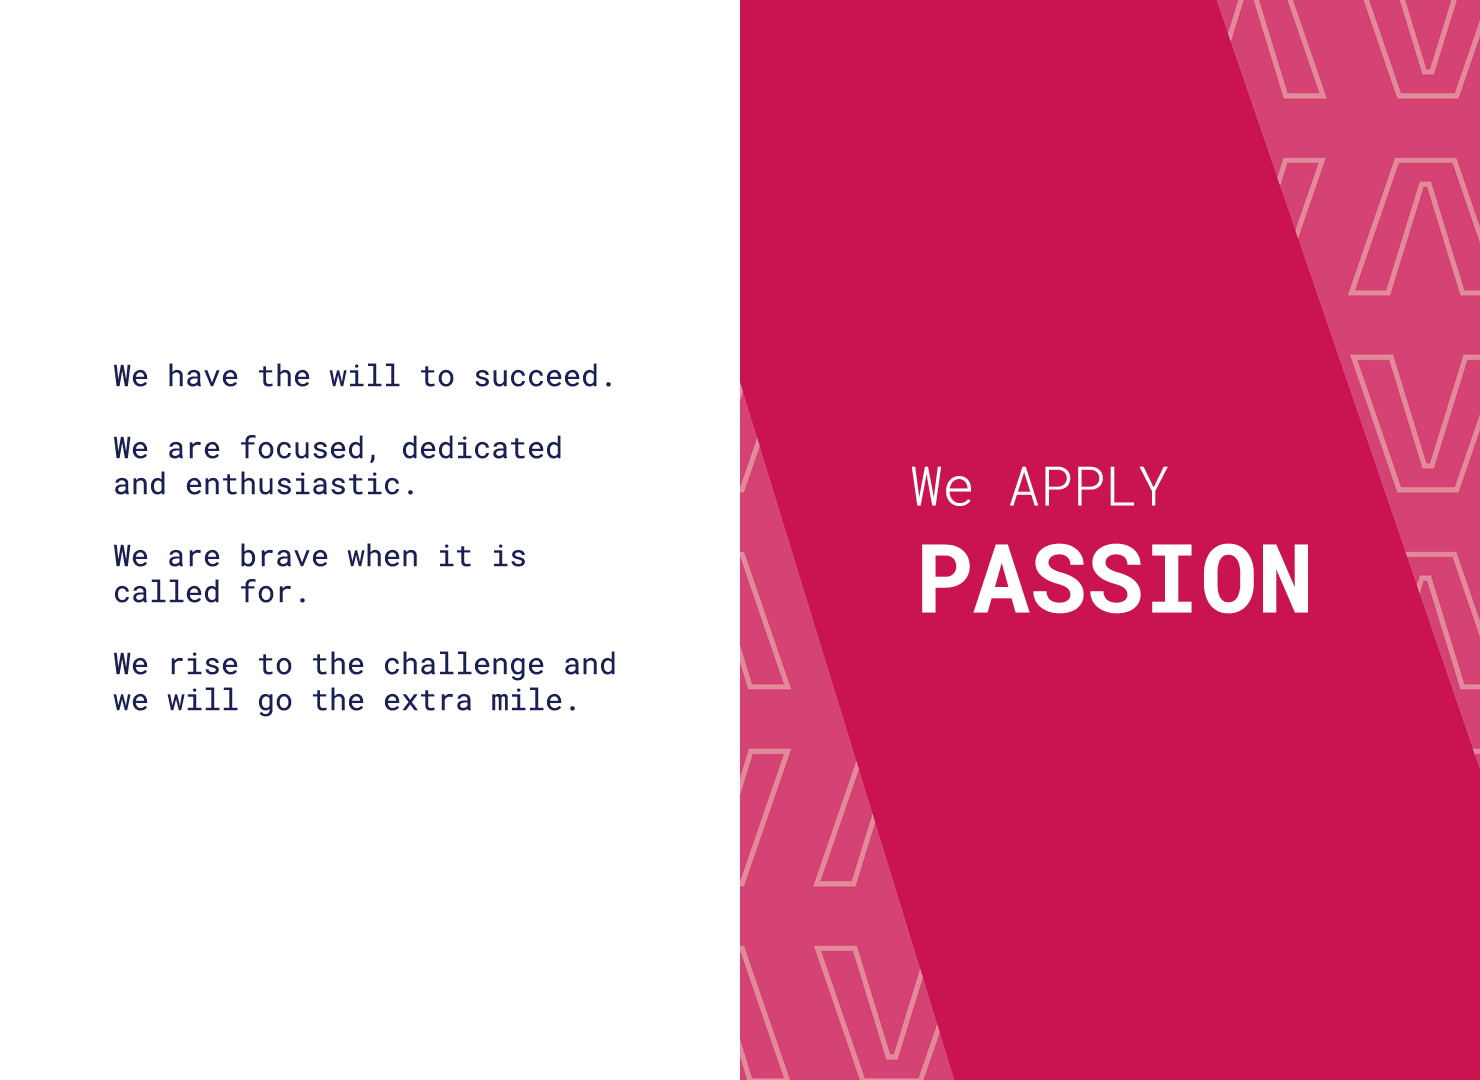 APPLY Verdier2-1 - We APPLY passion